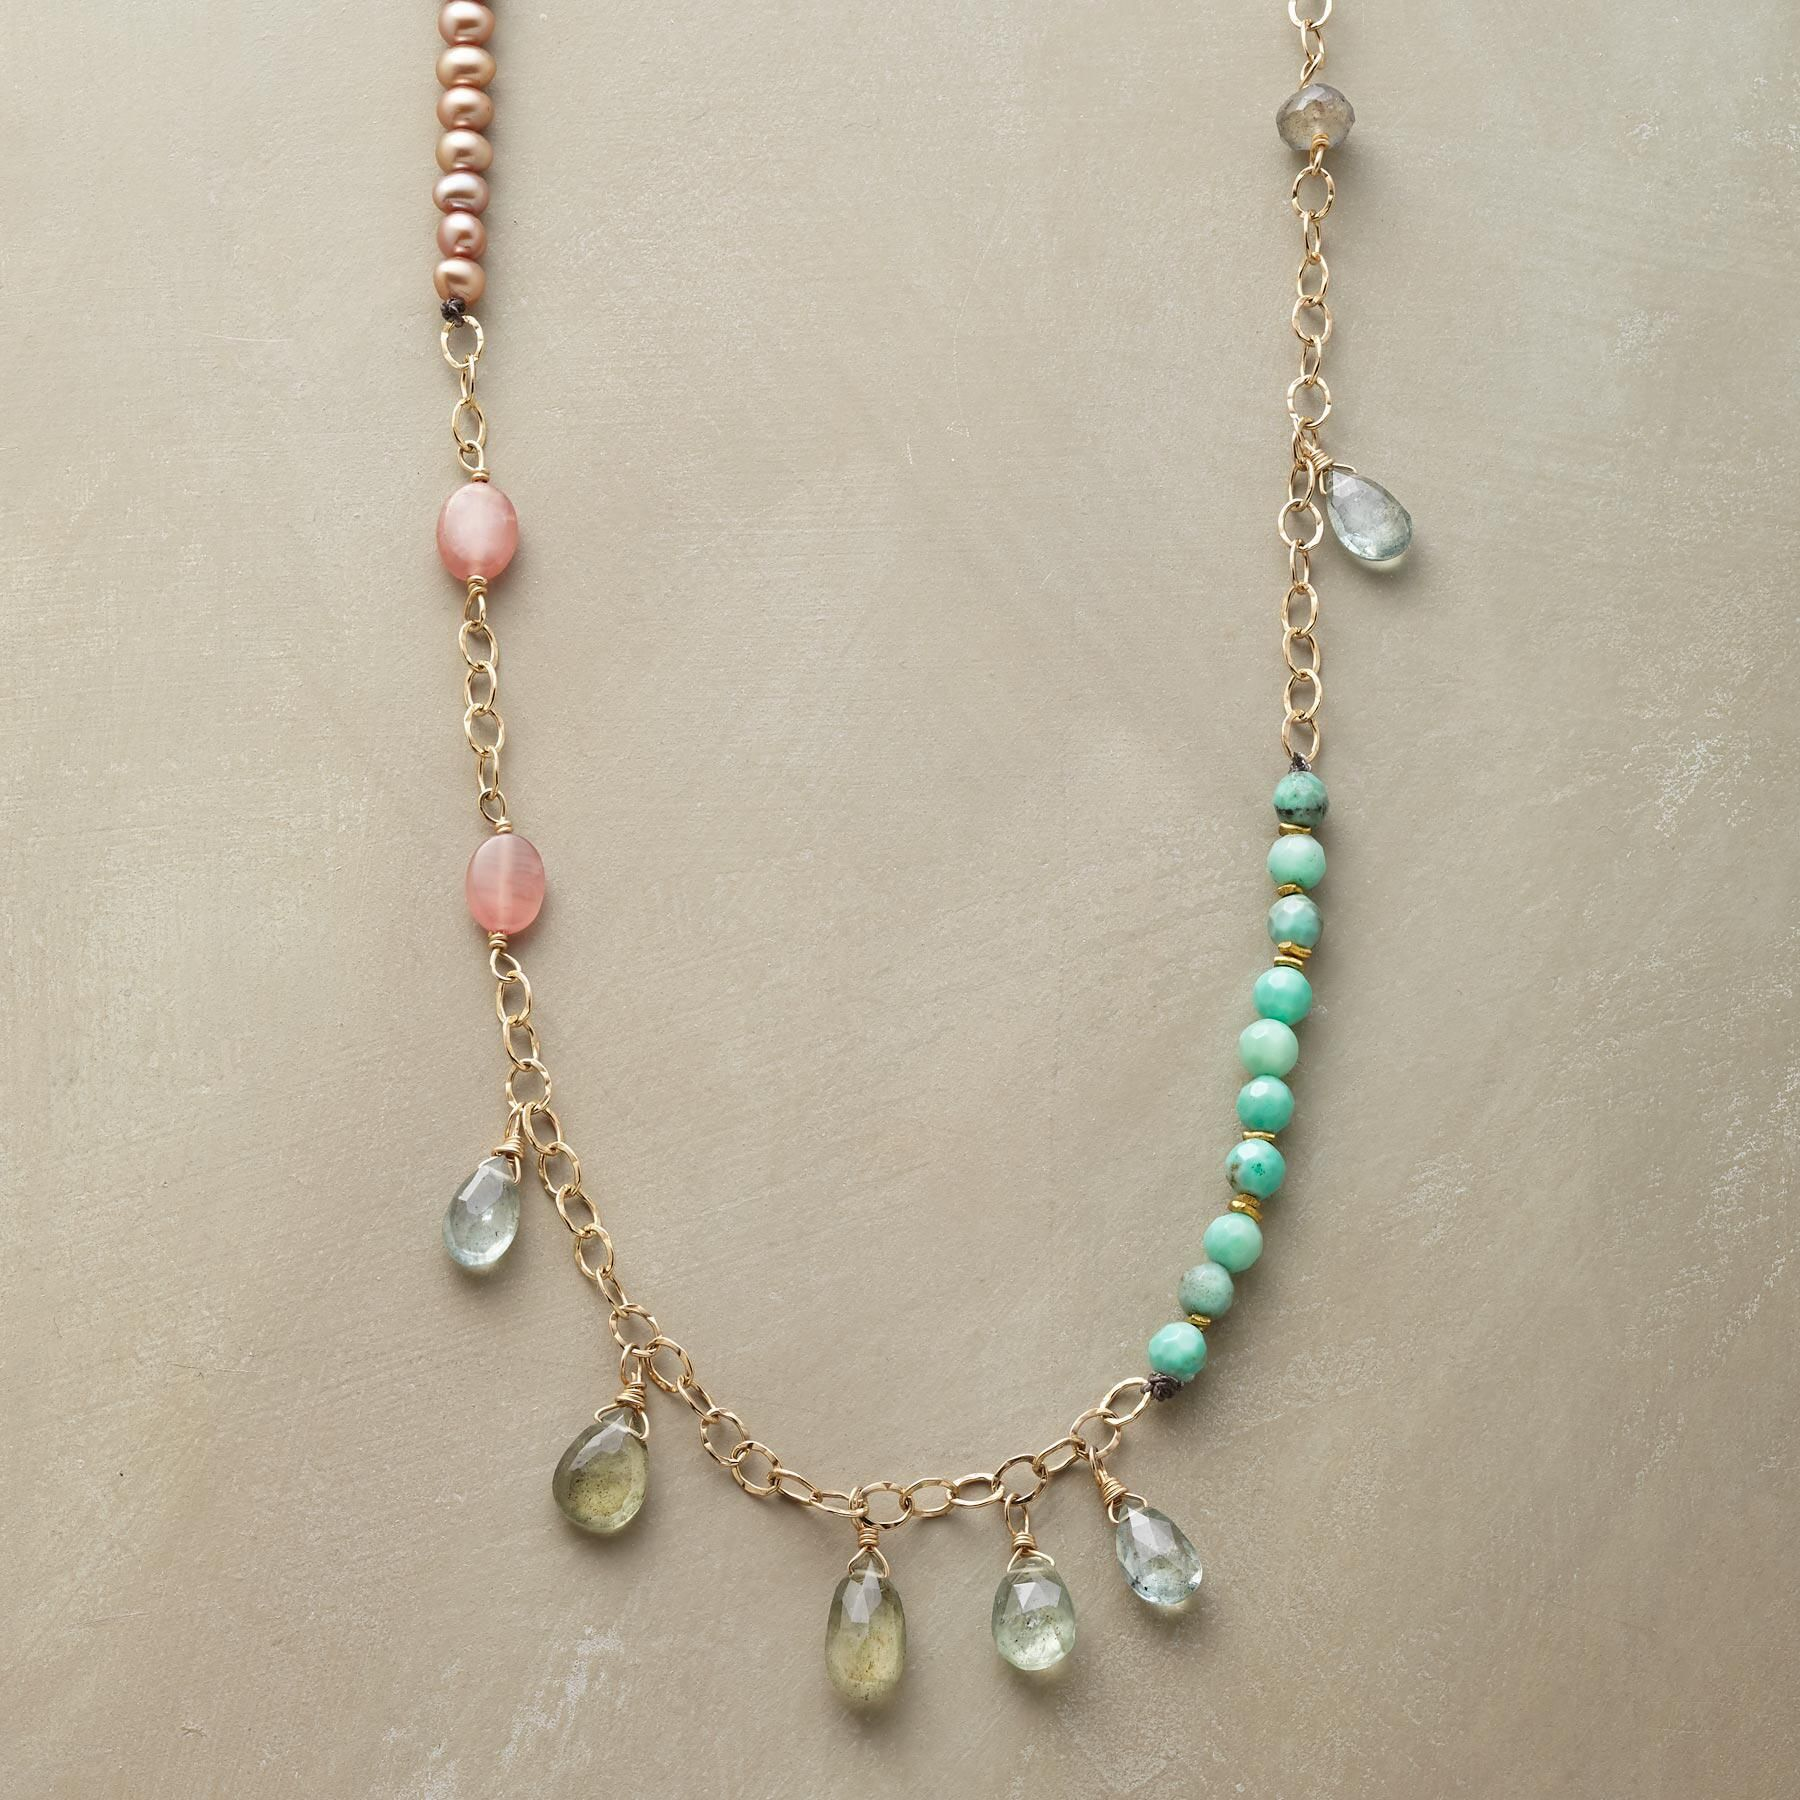 """PRIMAVERA NECKLACE--This handcrafted necklace brings together semiprecious gems in a fresh and unexpected combination—tawny pearls and shimmering labradorite, blue-green chrysoprase, rhodochrosite's subtle warmth and sparkling drops of faceted aquamarine. 12kt gold-filled chain/toggle. USA. Exclusive. 27""""L..polishingCloth {display:none"""